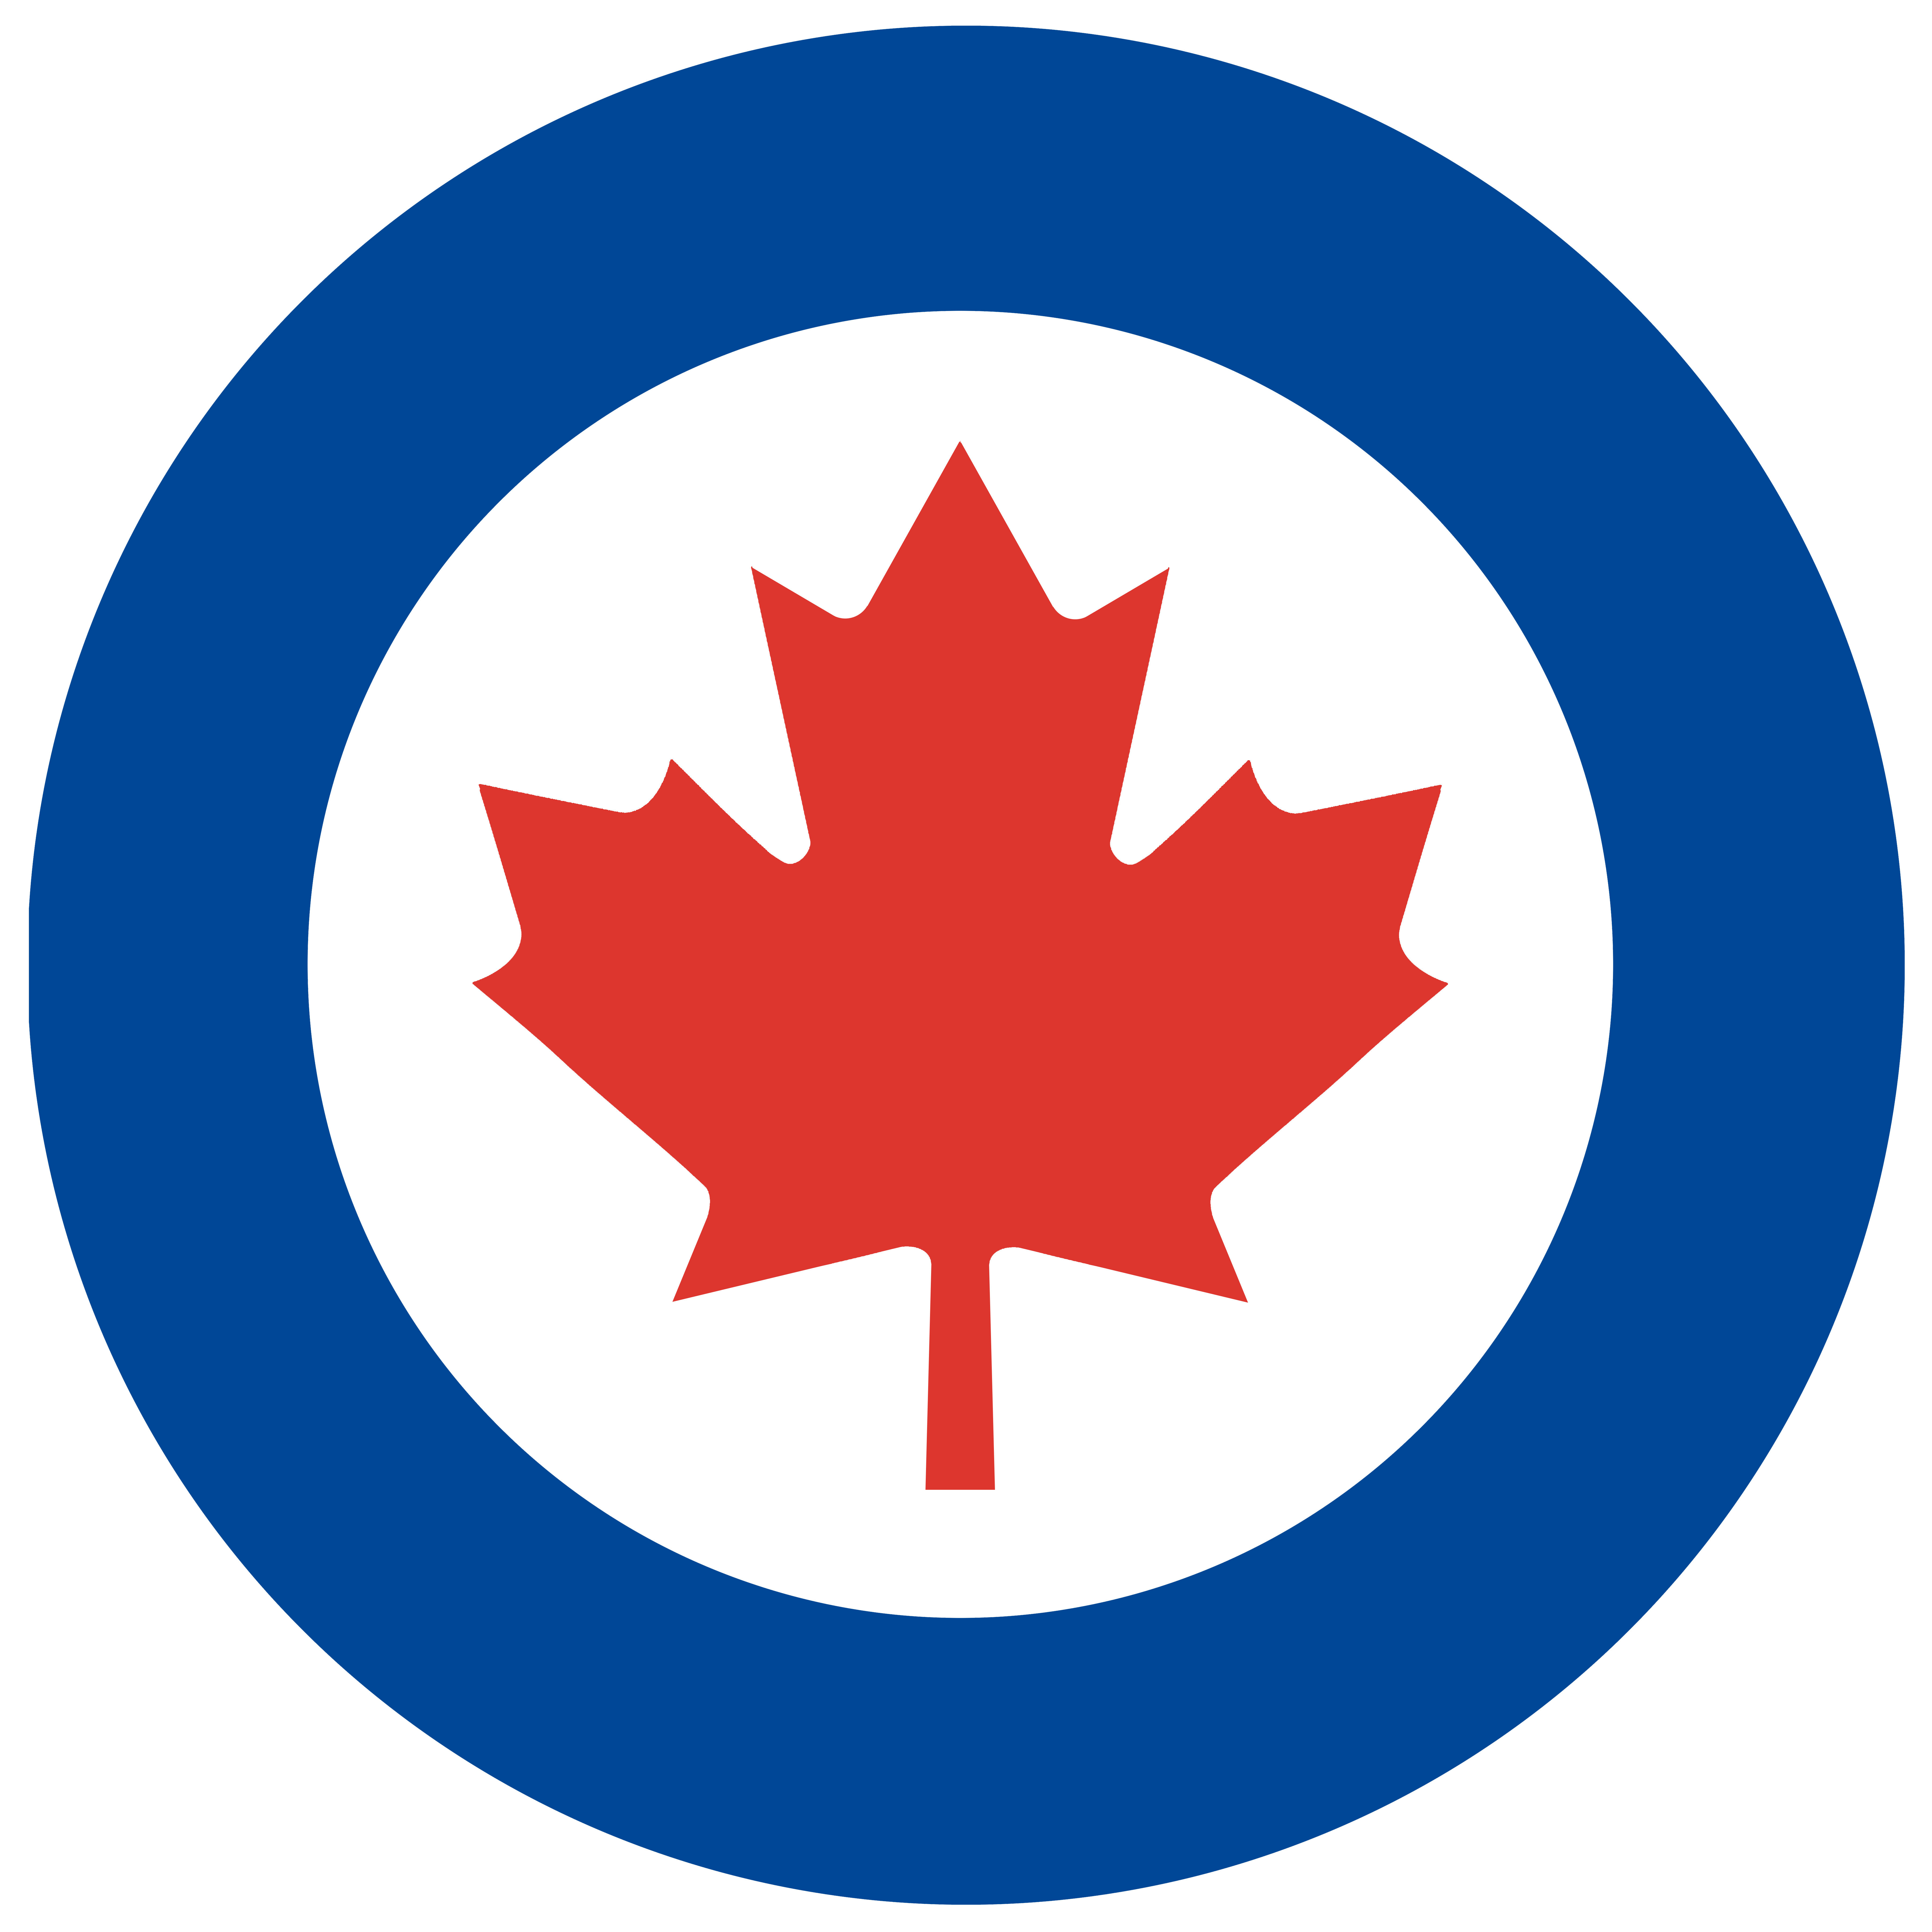 Royal canadian air force welcome to the royal canadian air force biocorpaavc Gallery